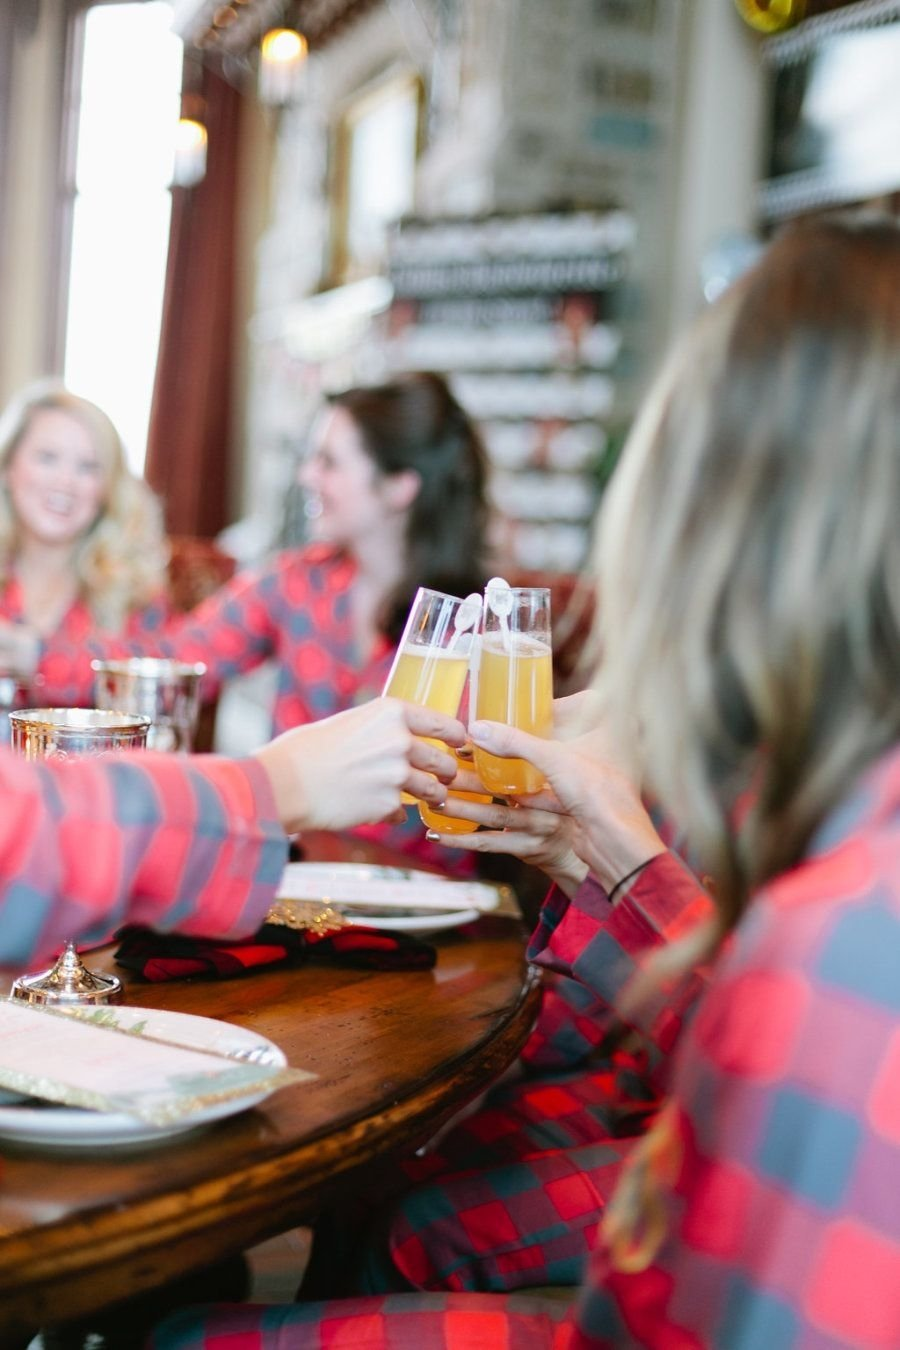 10 Gorgeous Low Key Bachelorette Party Ideas cozy flannel themed bachelorette weekend in the mountains 5 2021